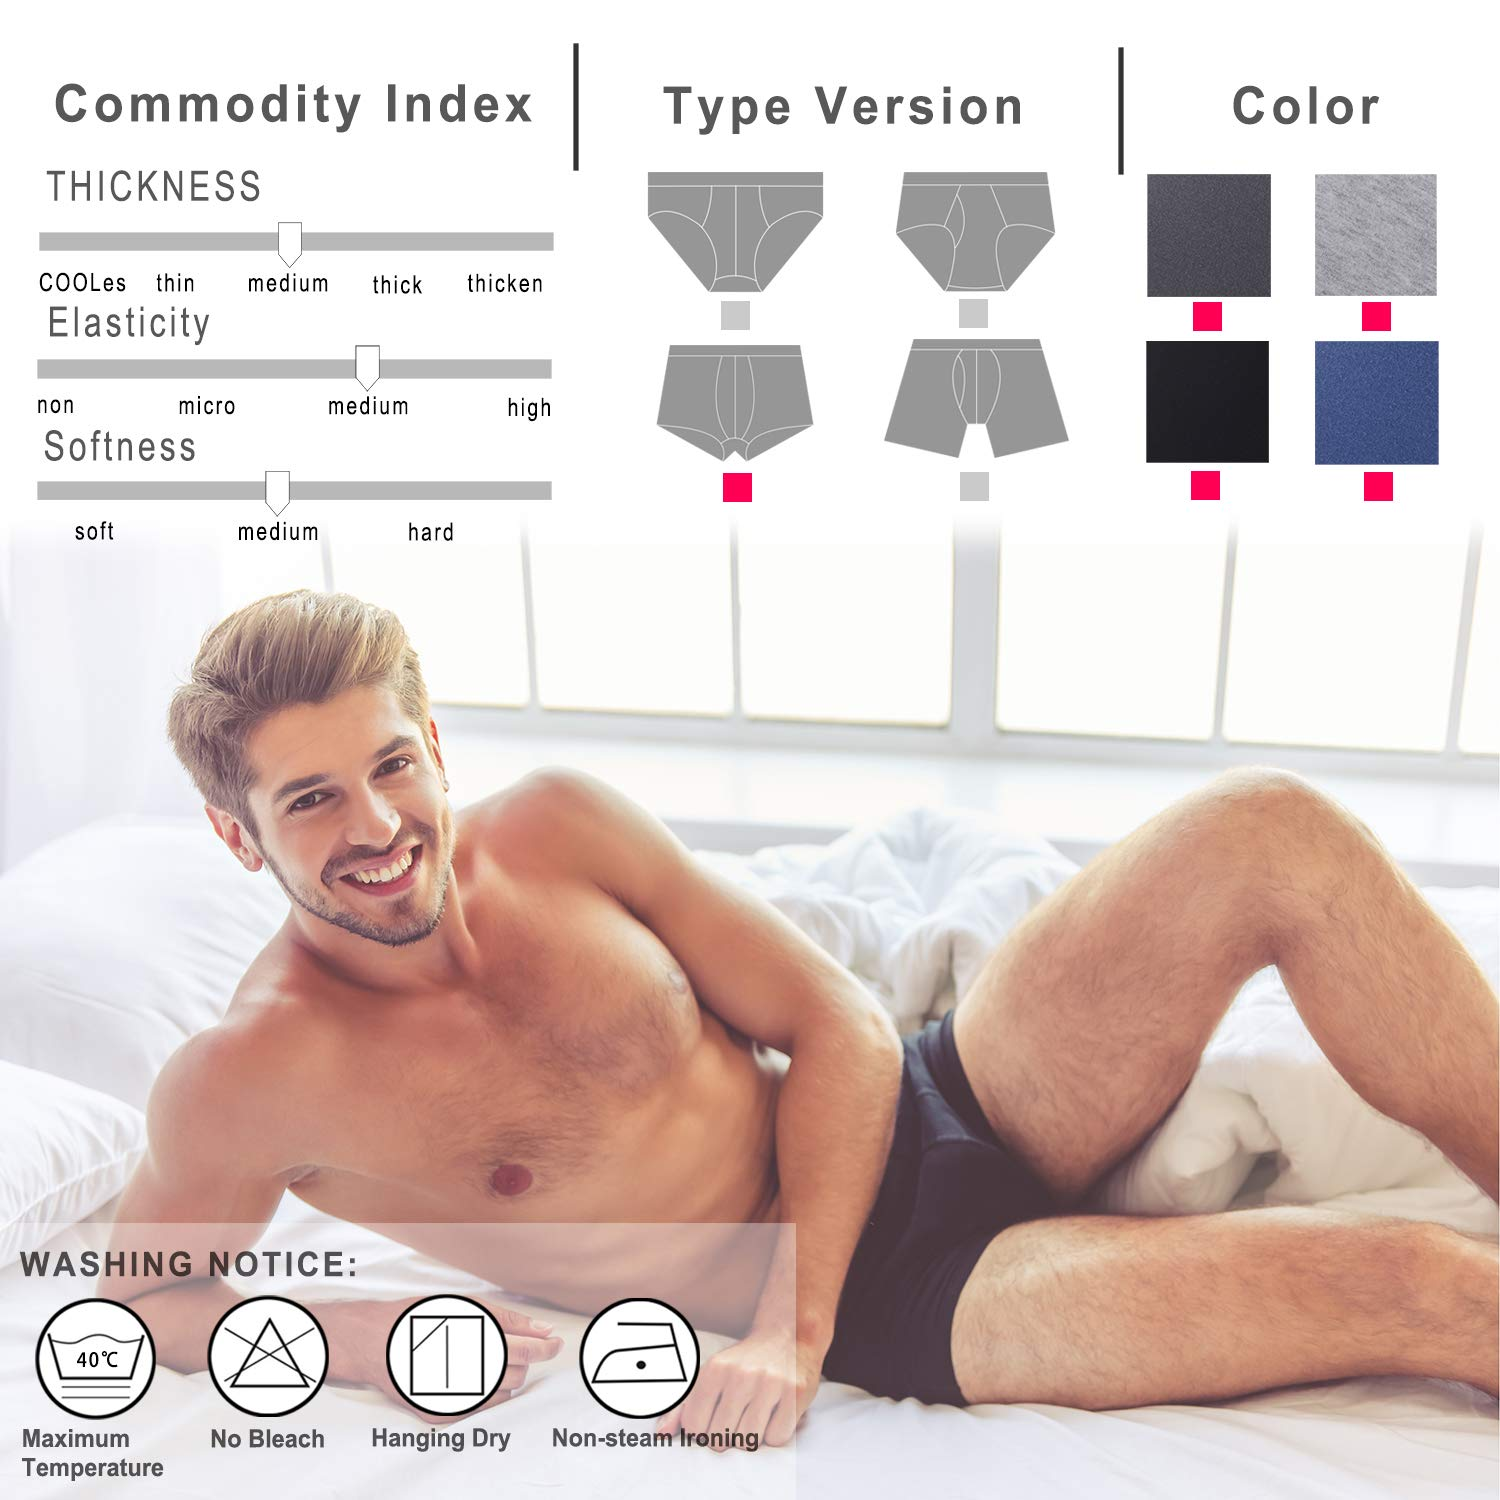 LoBeaus Mens Underwear Trunks No Fly,Boxer Briefs Short Leg Length,Ultimate Soft Cotton 4-Pack or 8-Pack